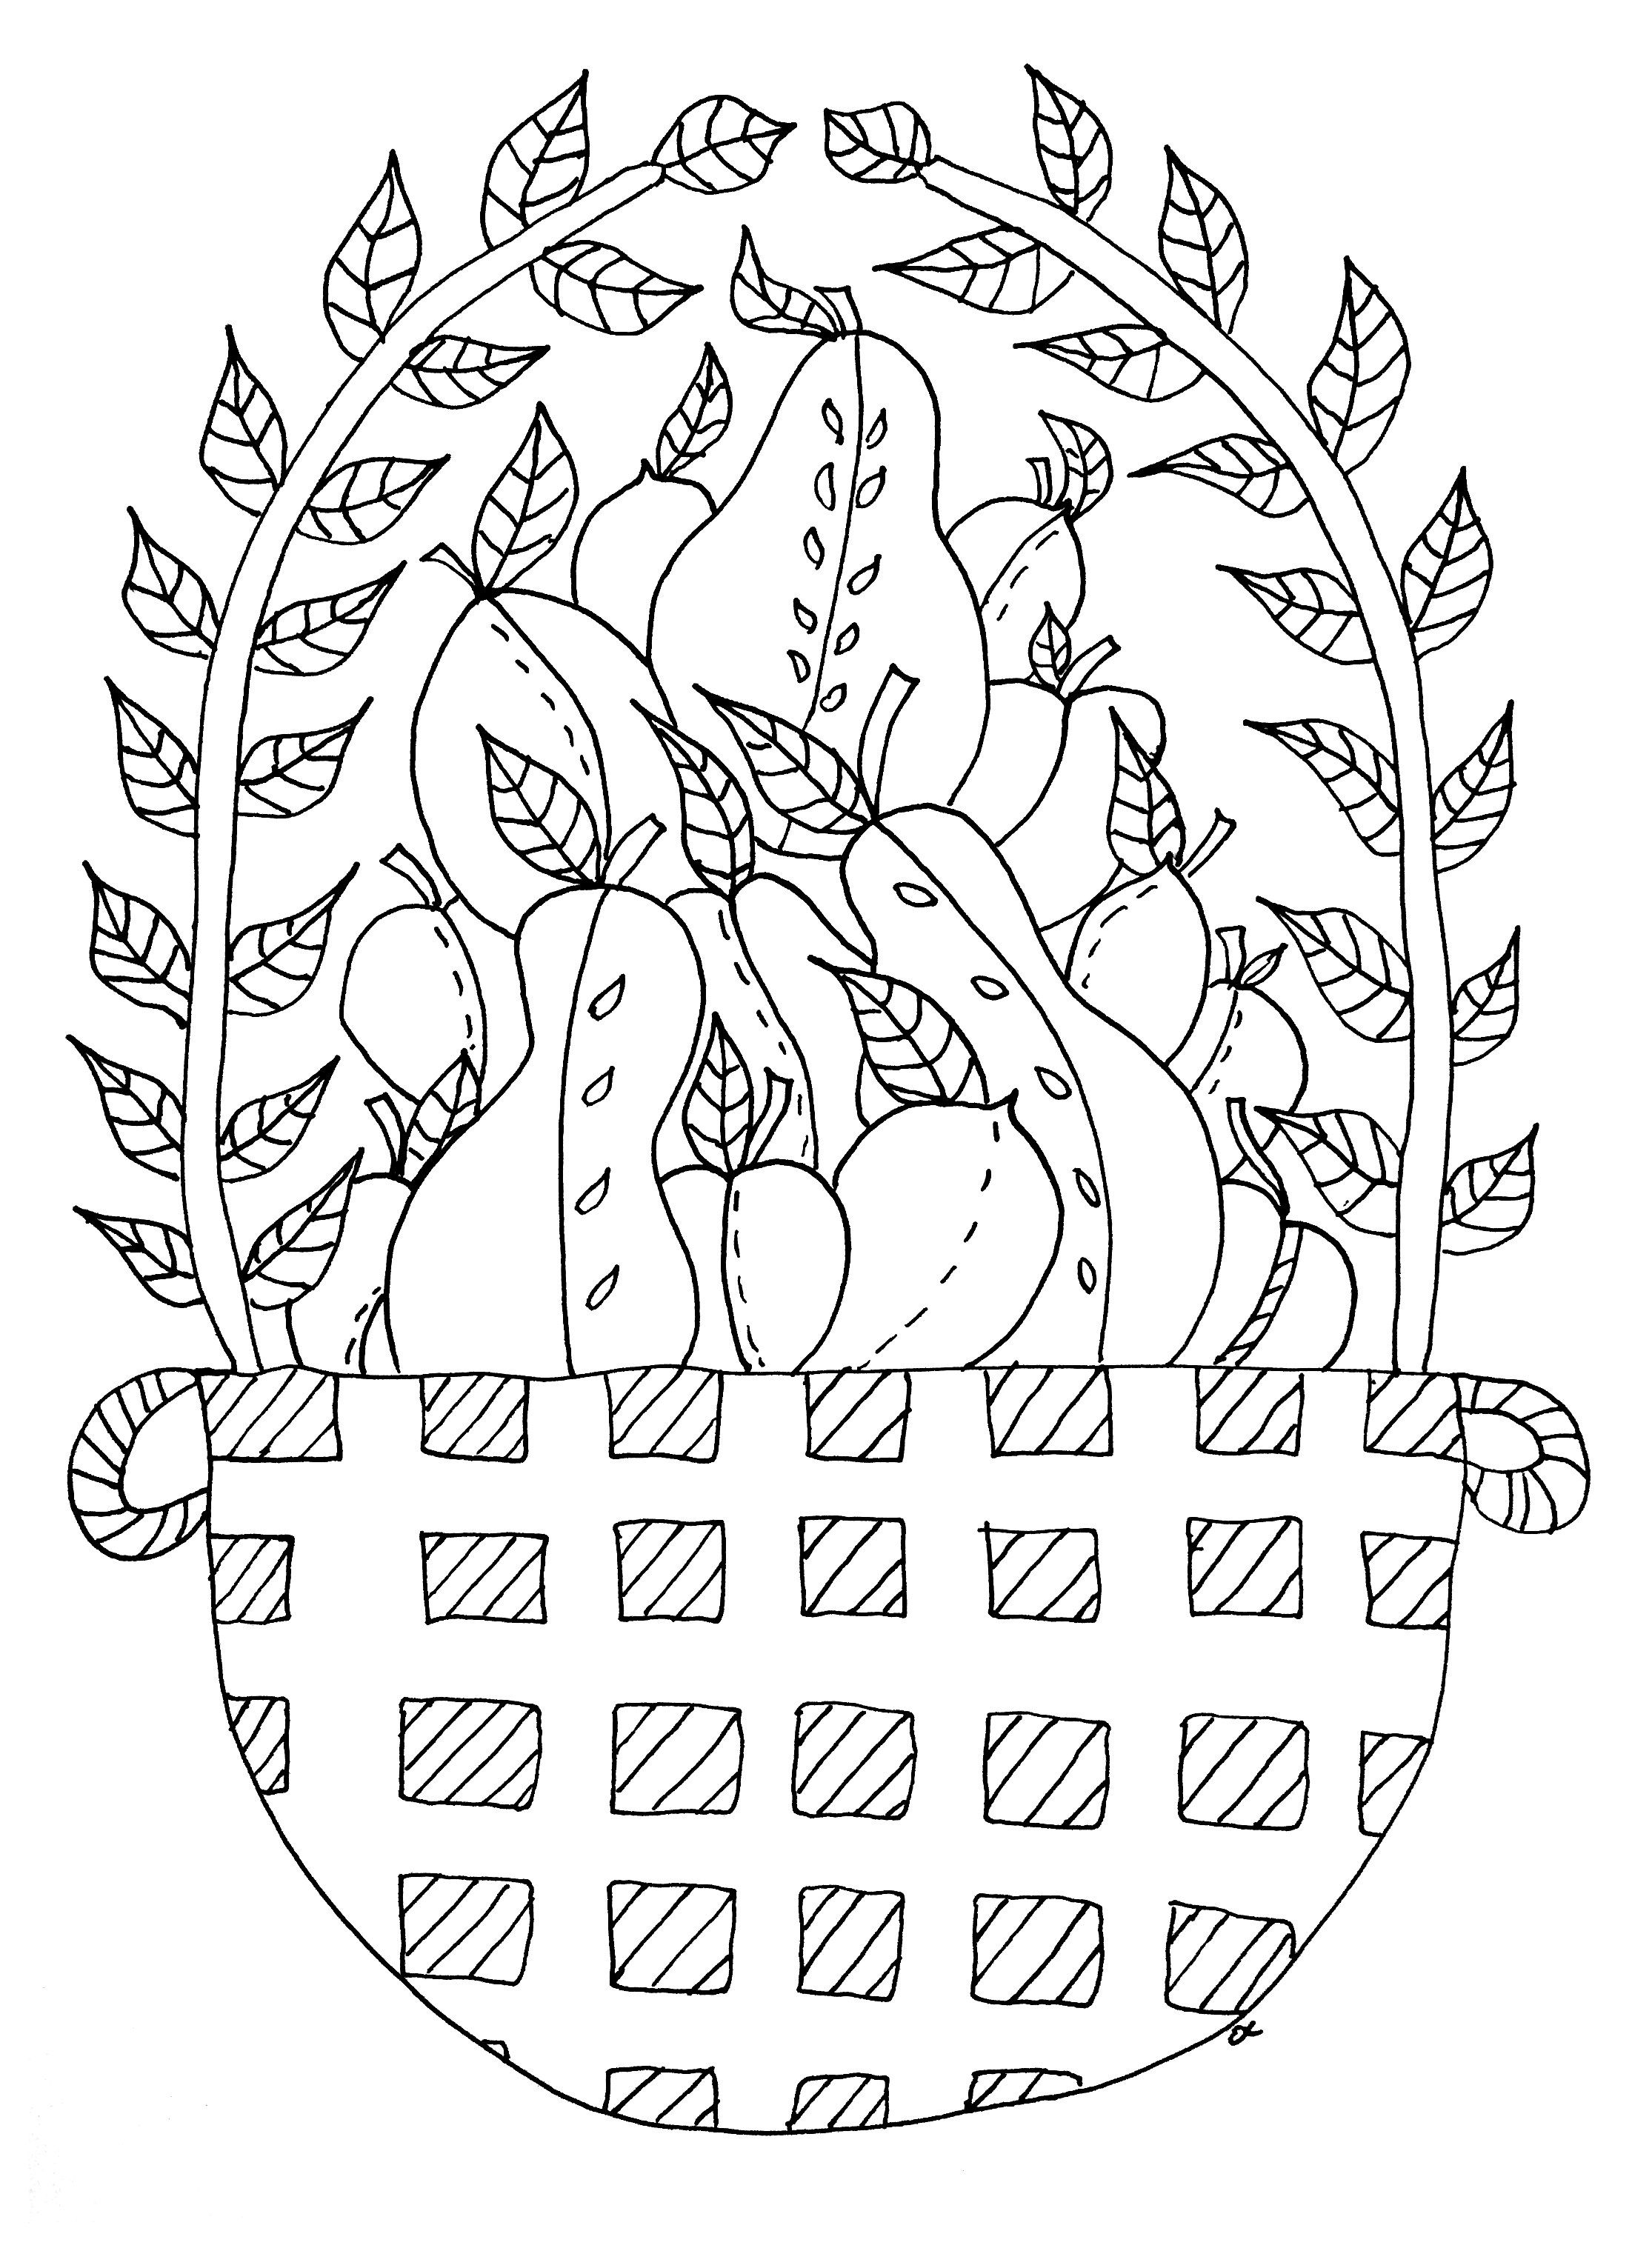 to print this free coloring page coloring beauty beast click on